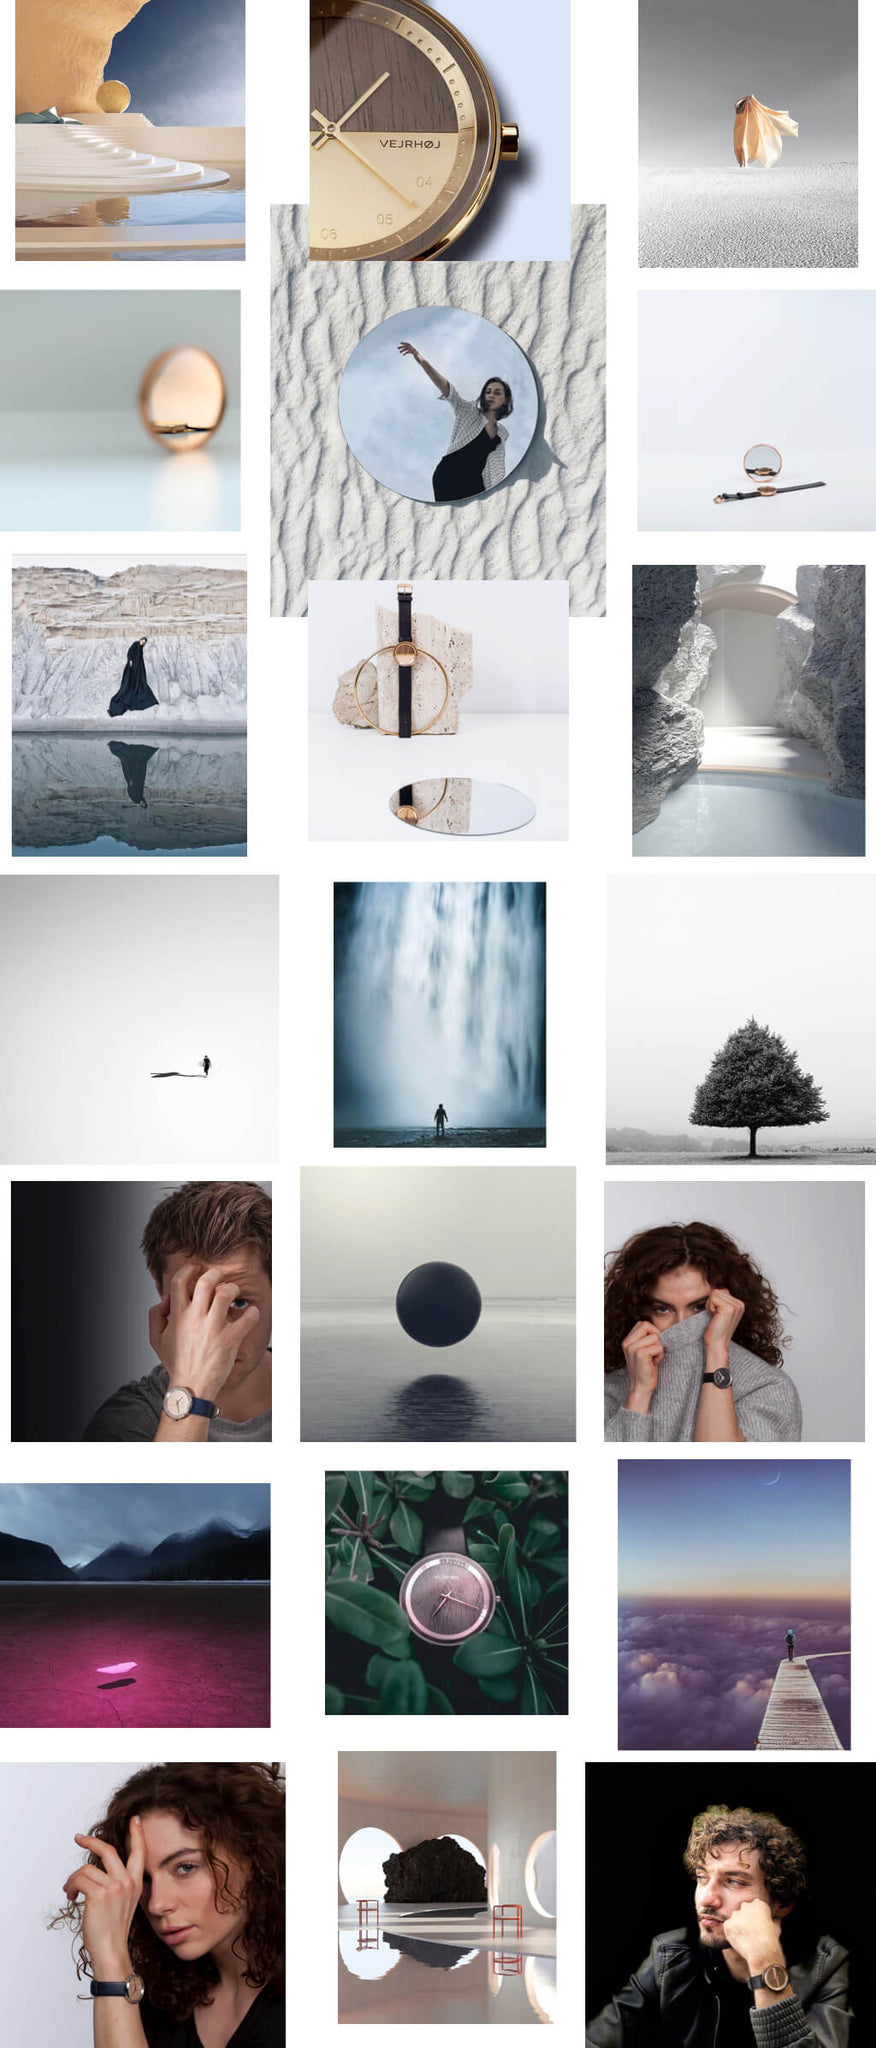 instagram feed vejrhoj watches